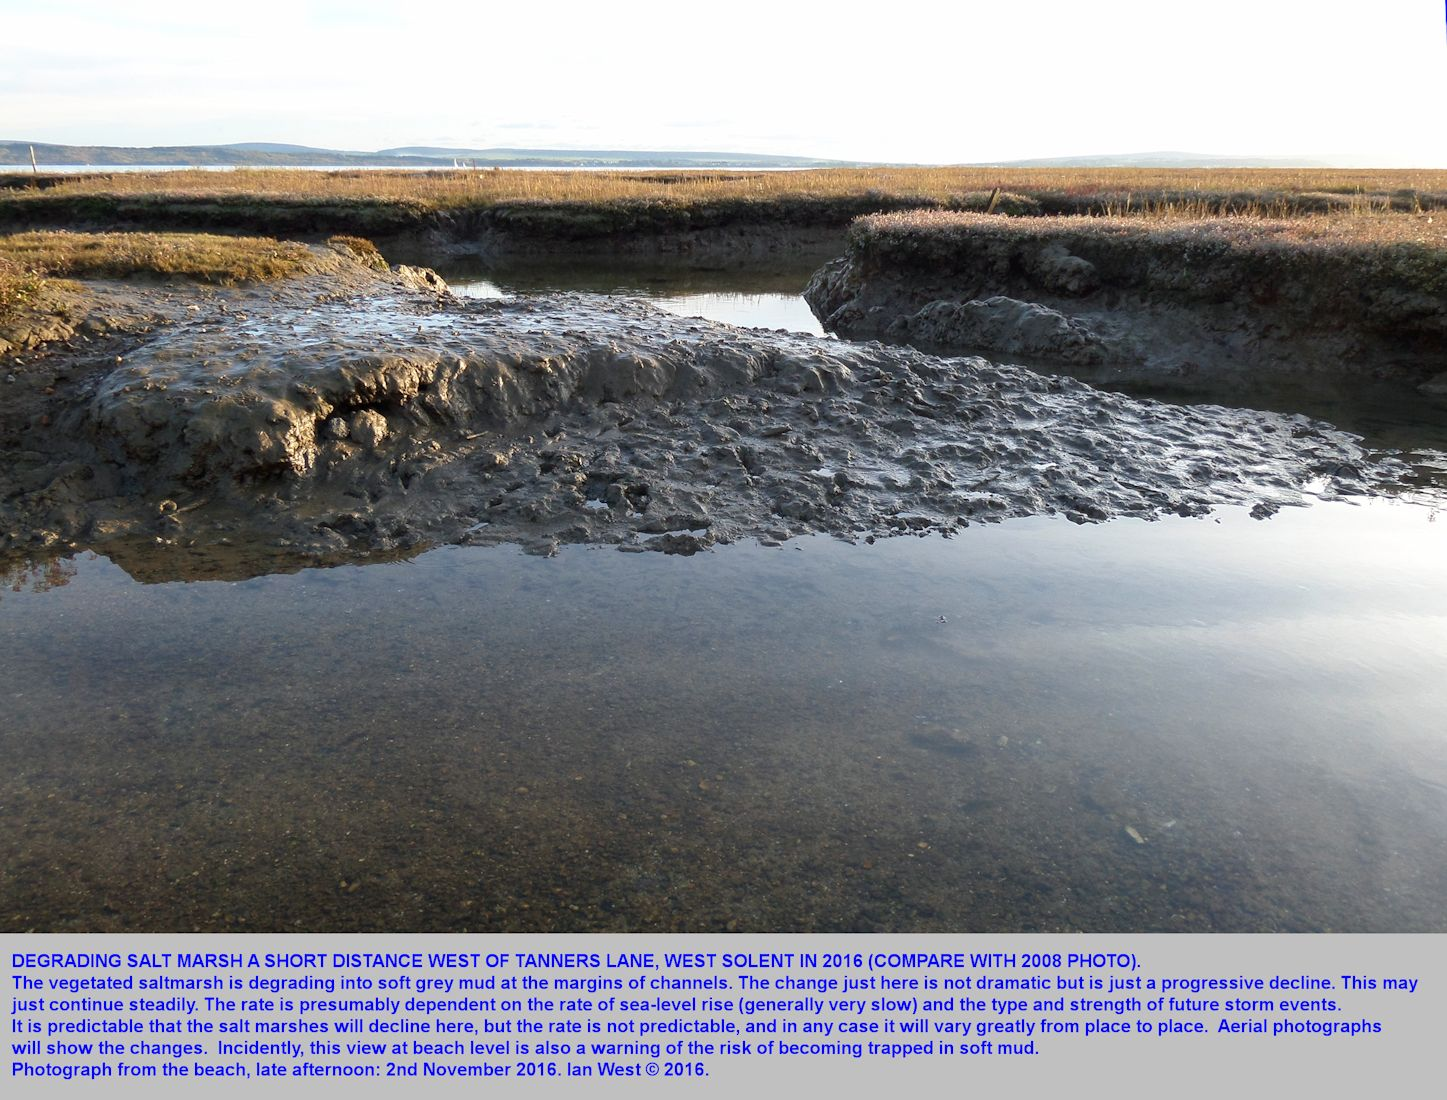 Parts of saltmarshes where the Spartina has died back and erosion is occurring, shore just to the west of Tanners Lane, West Solent, southern England, 2nd November 2016, compare with 2008 photograph of this locality with a topple